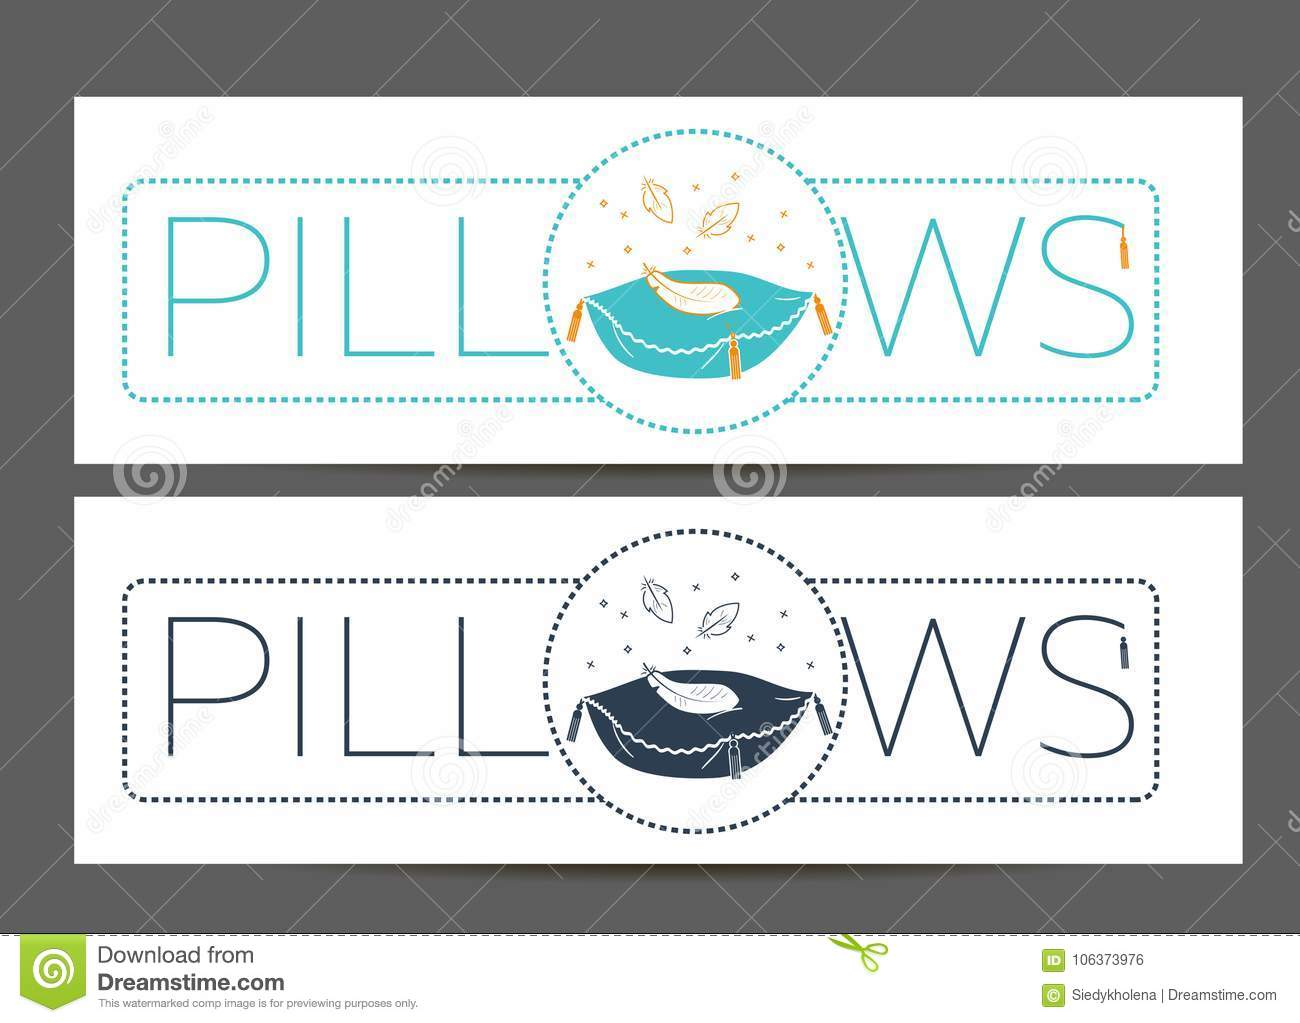 cleaning pillows linear style stock illustration illustration of